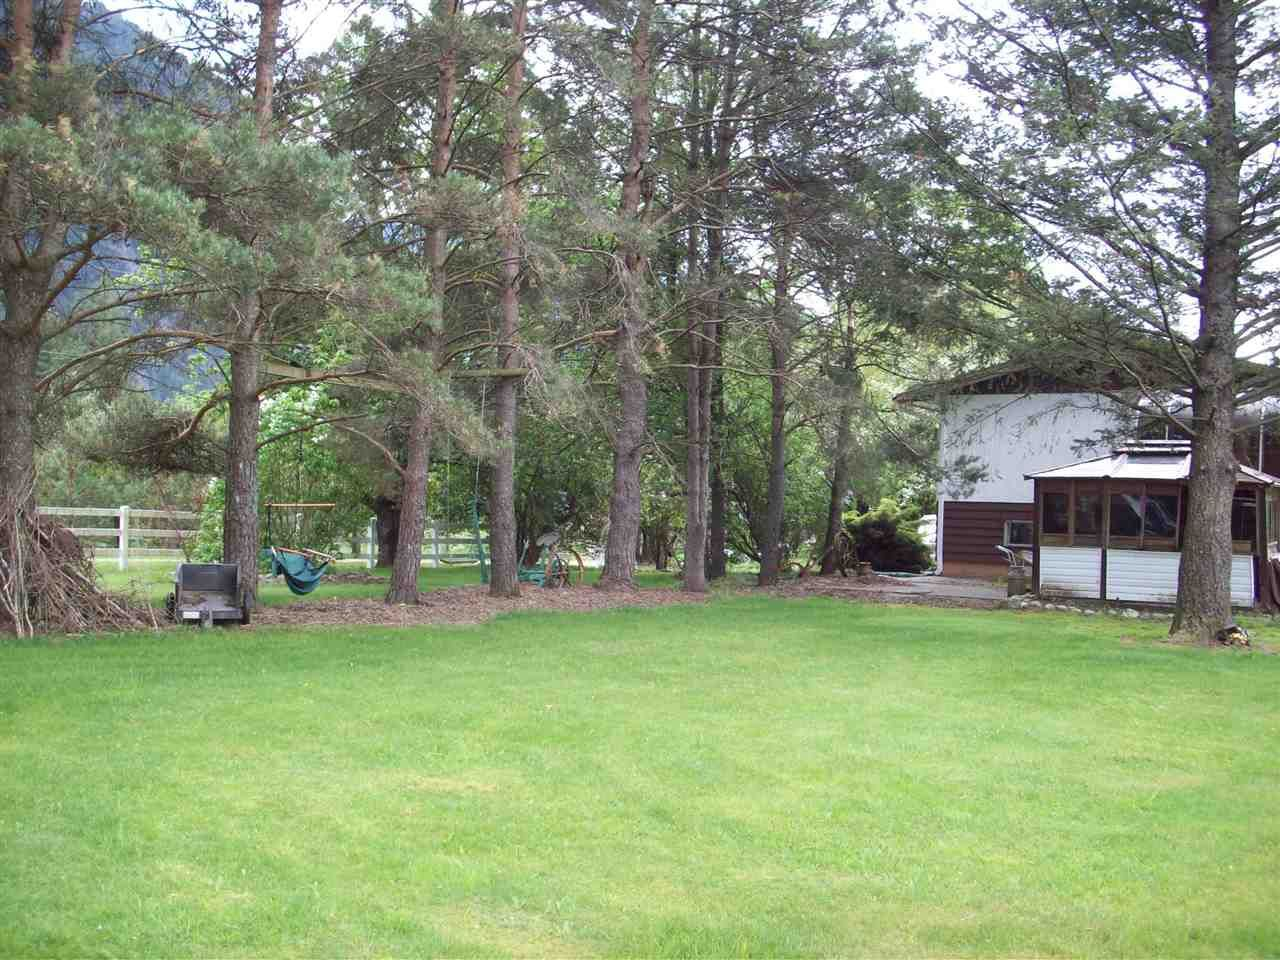 Photo 16: Photos: 58955 ANDERSON LANE in Hope: Hope Laidlaw House for sale